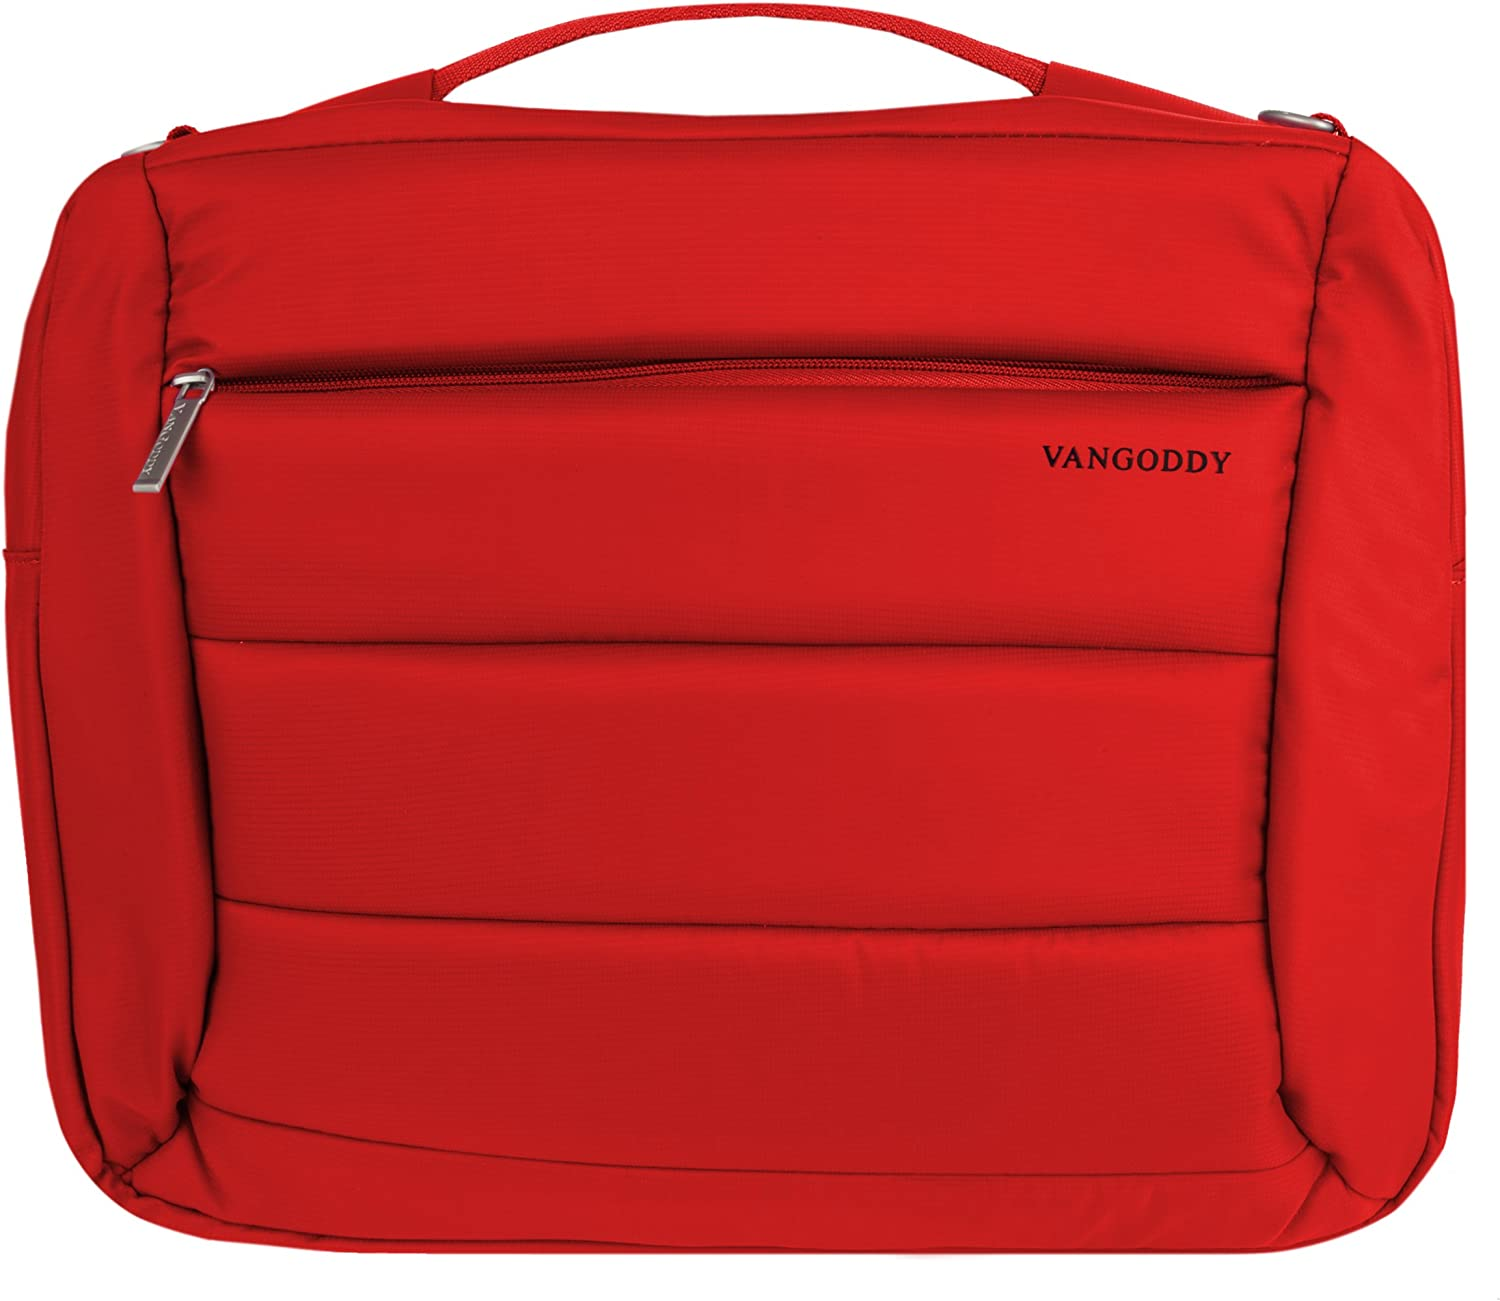 Vangoddy 3 in 1 Backpack Messenger and Shoulder Bag for Lenovo Ideapad 300, 300s, 500, Y700, 14 inch to 15.6 inch Laptops